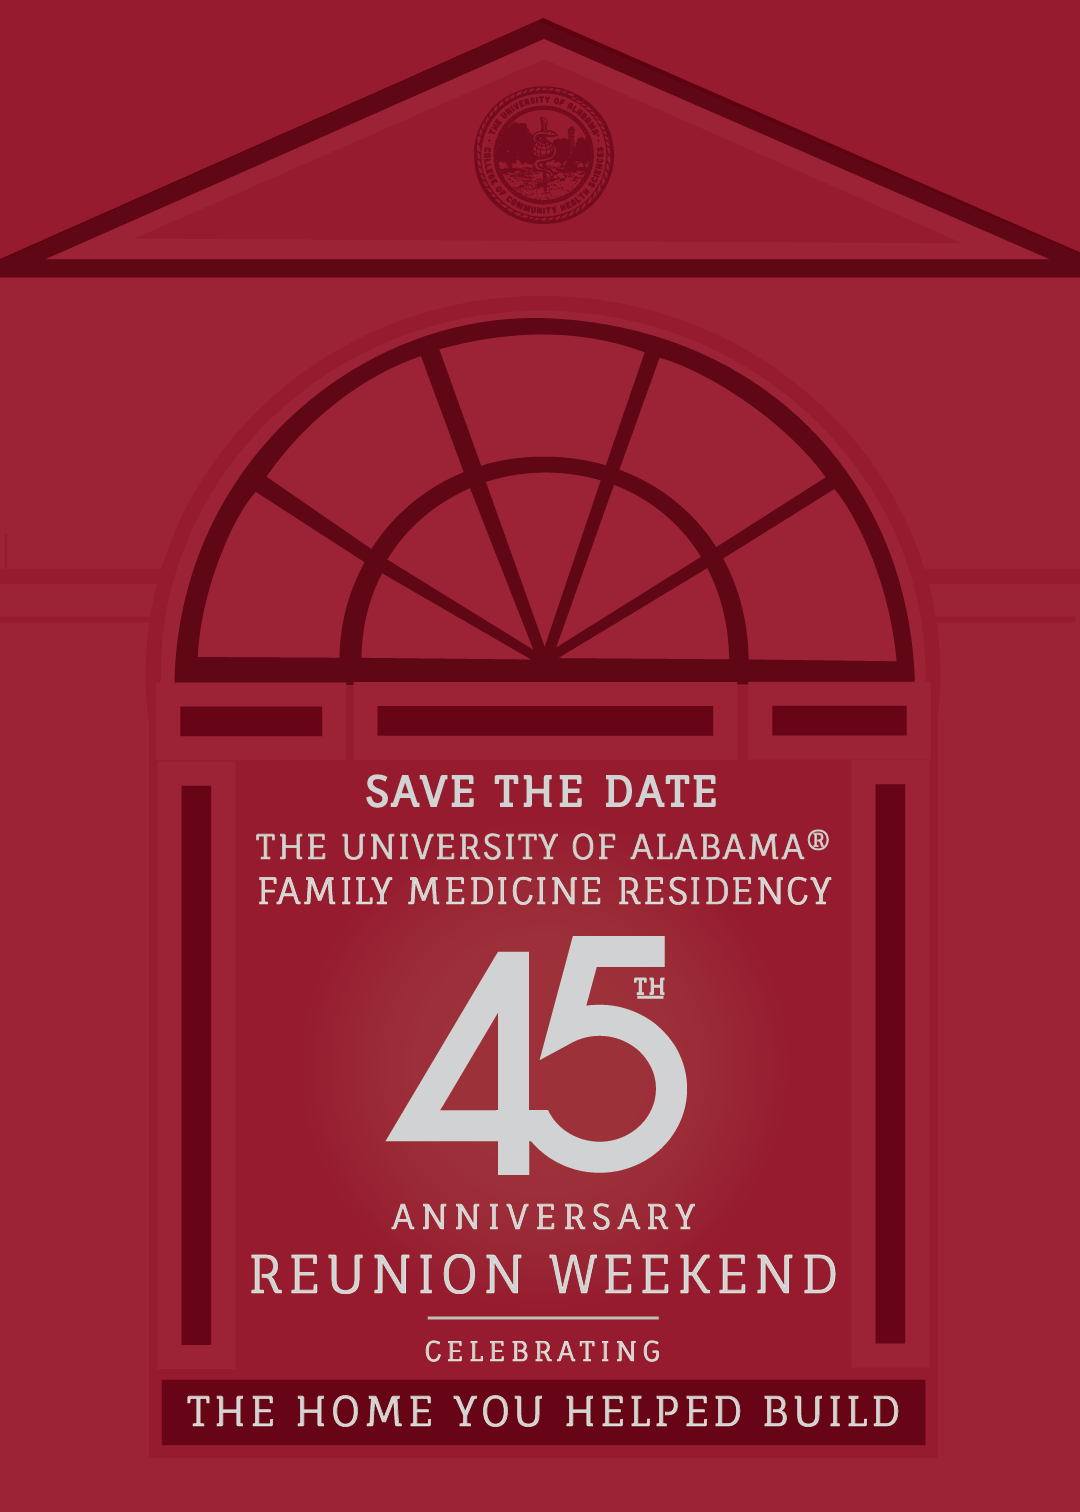 August 28-30, 2020 - Save the date University of Alabama Tuscaloosa Family Medicine Residency Program 45th Anniversary Reunion Weekend - Celebrating the house you helped build.